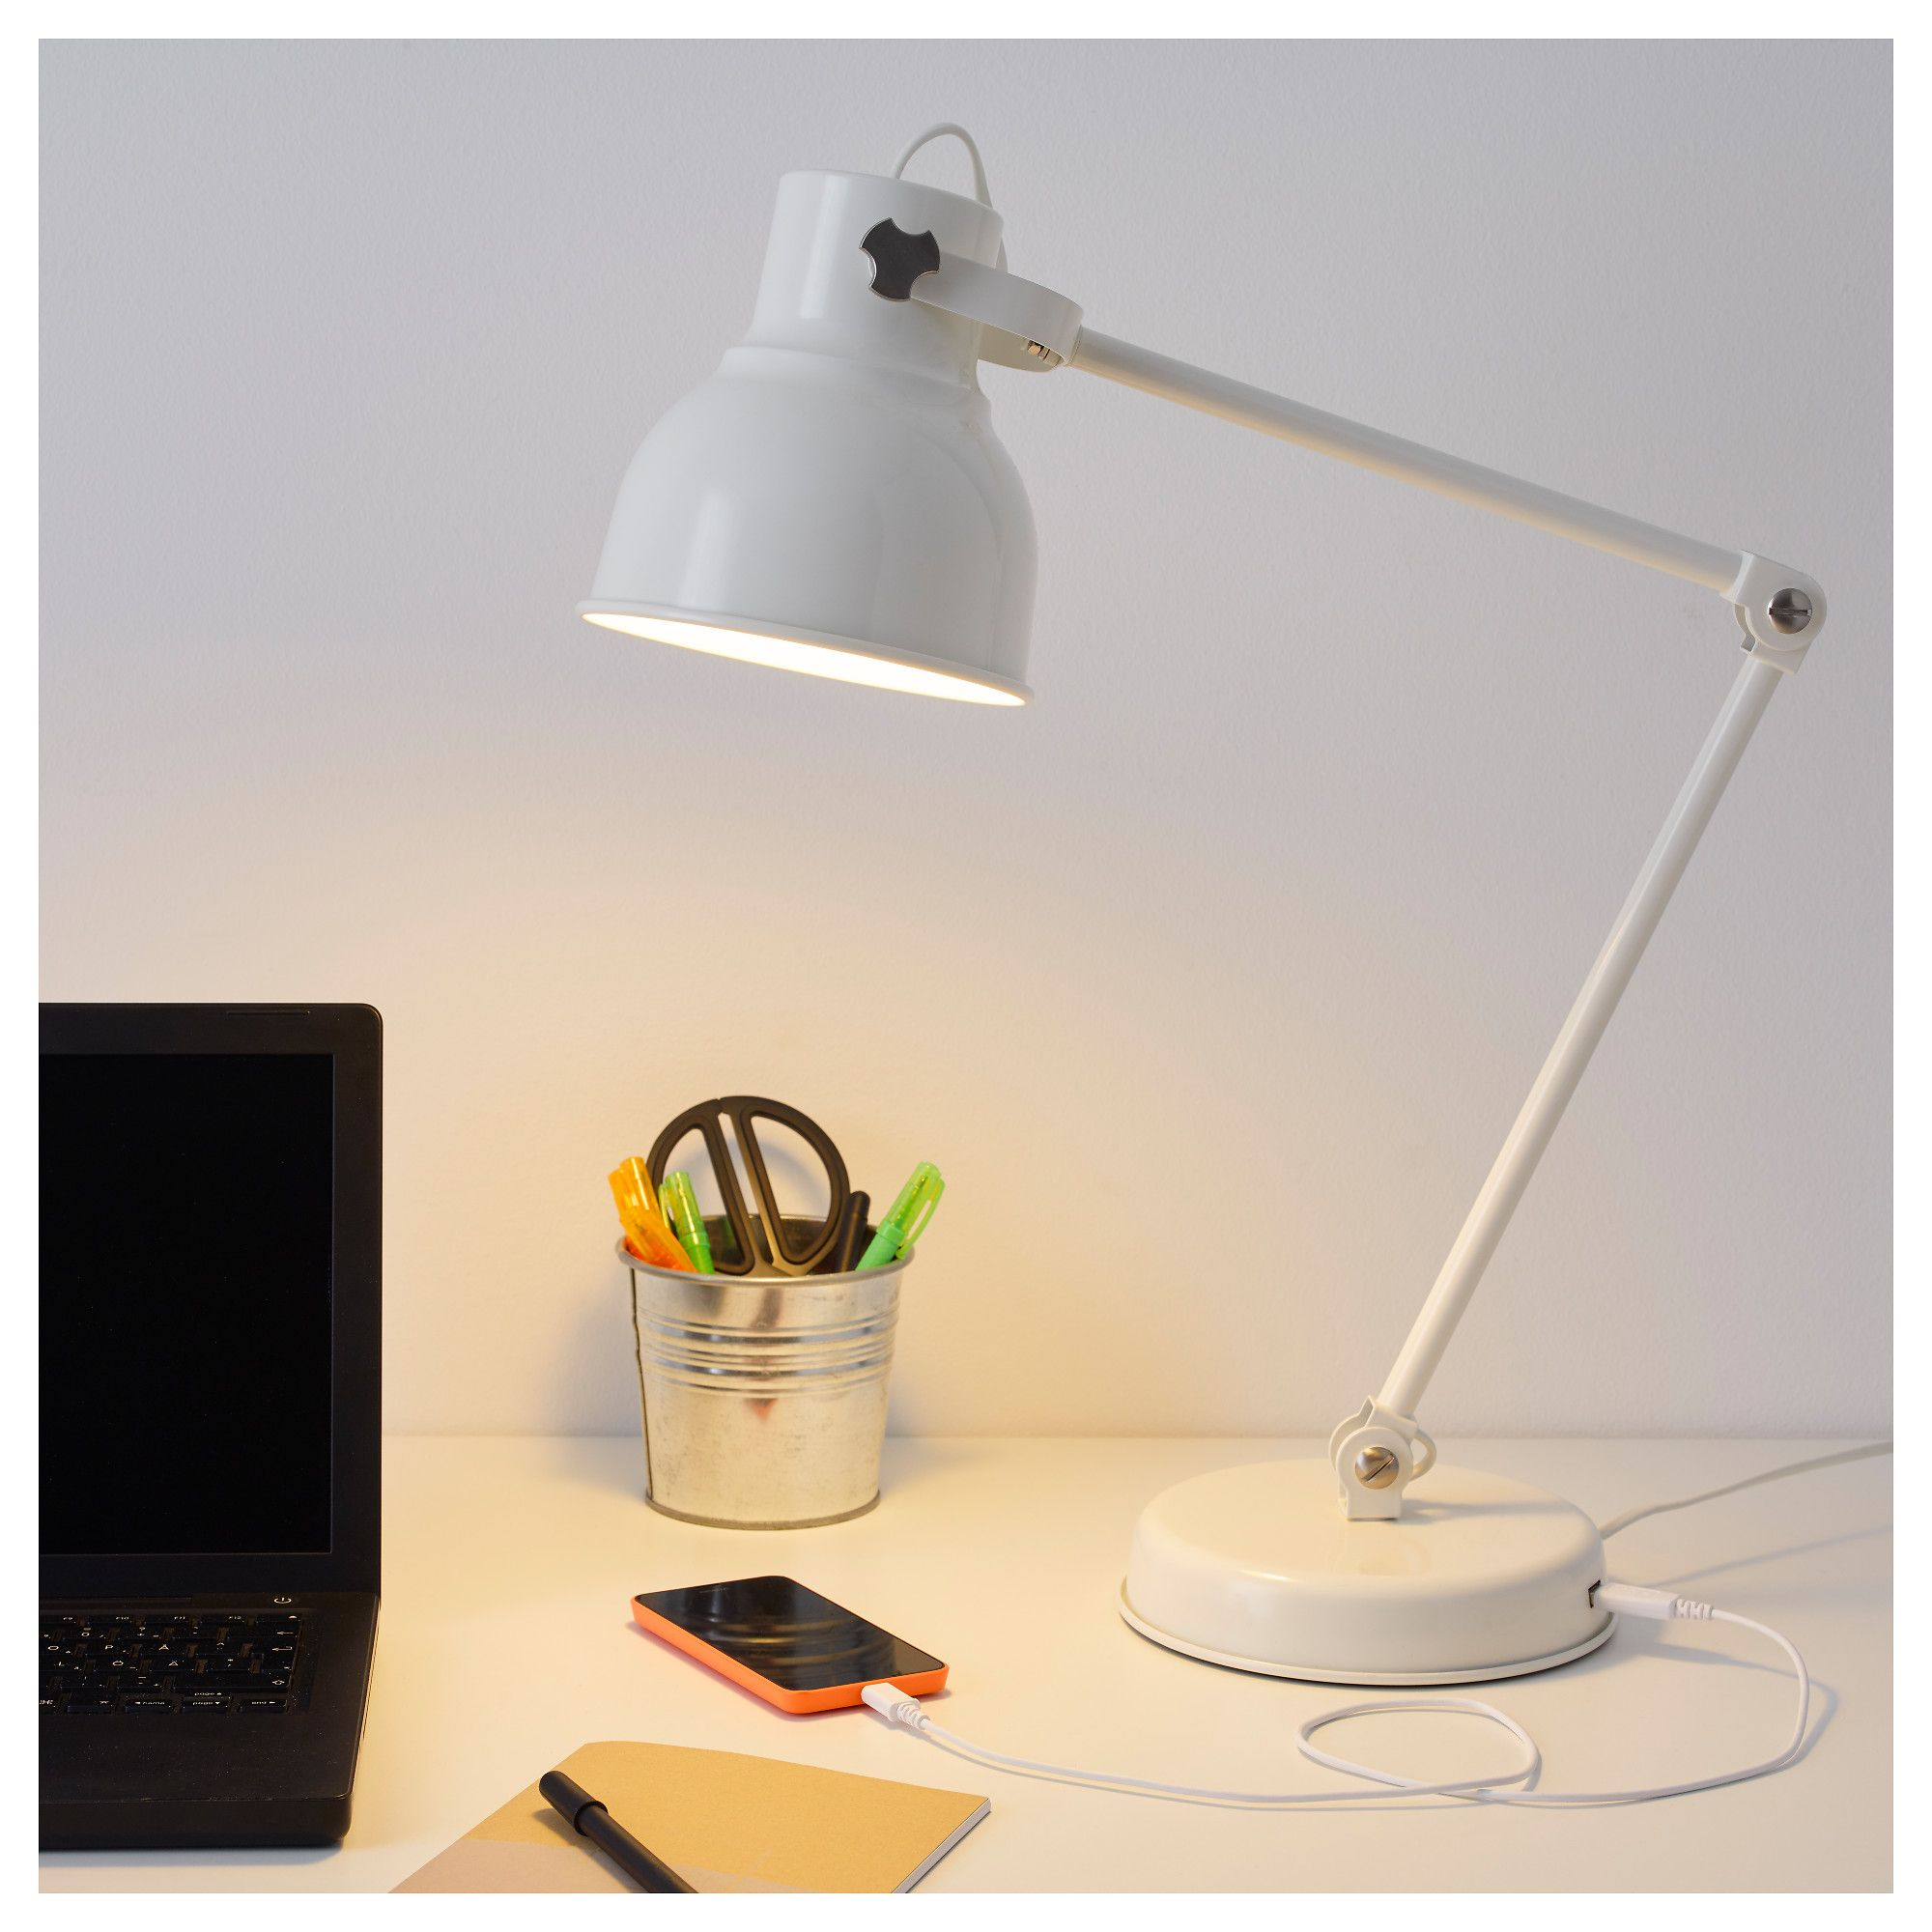 Furniture And Home Furnishings Products Work Lamp